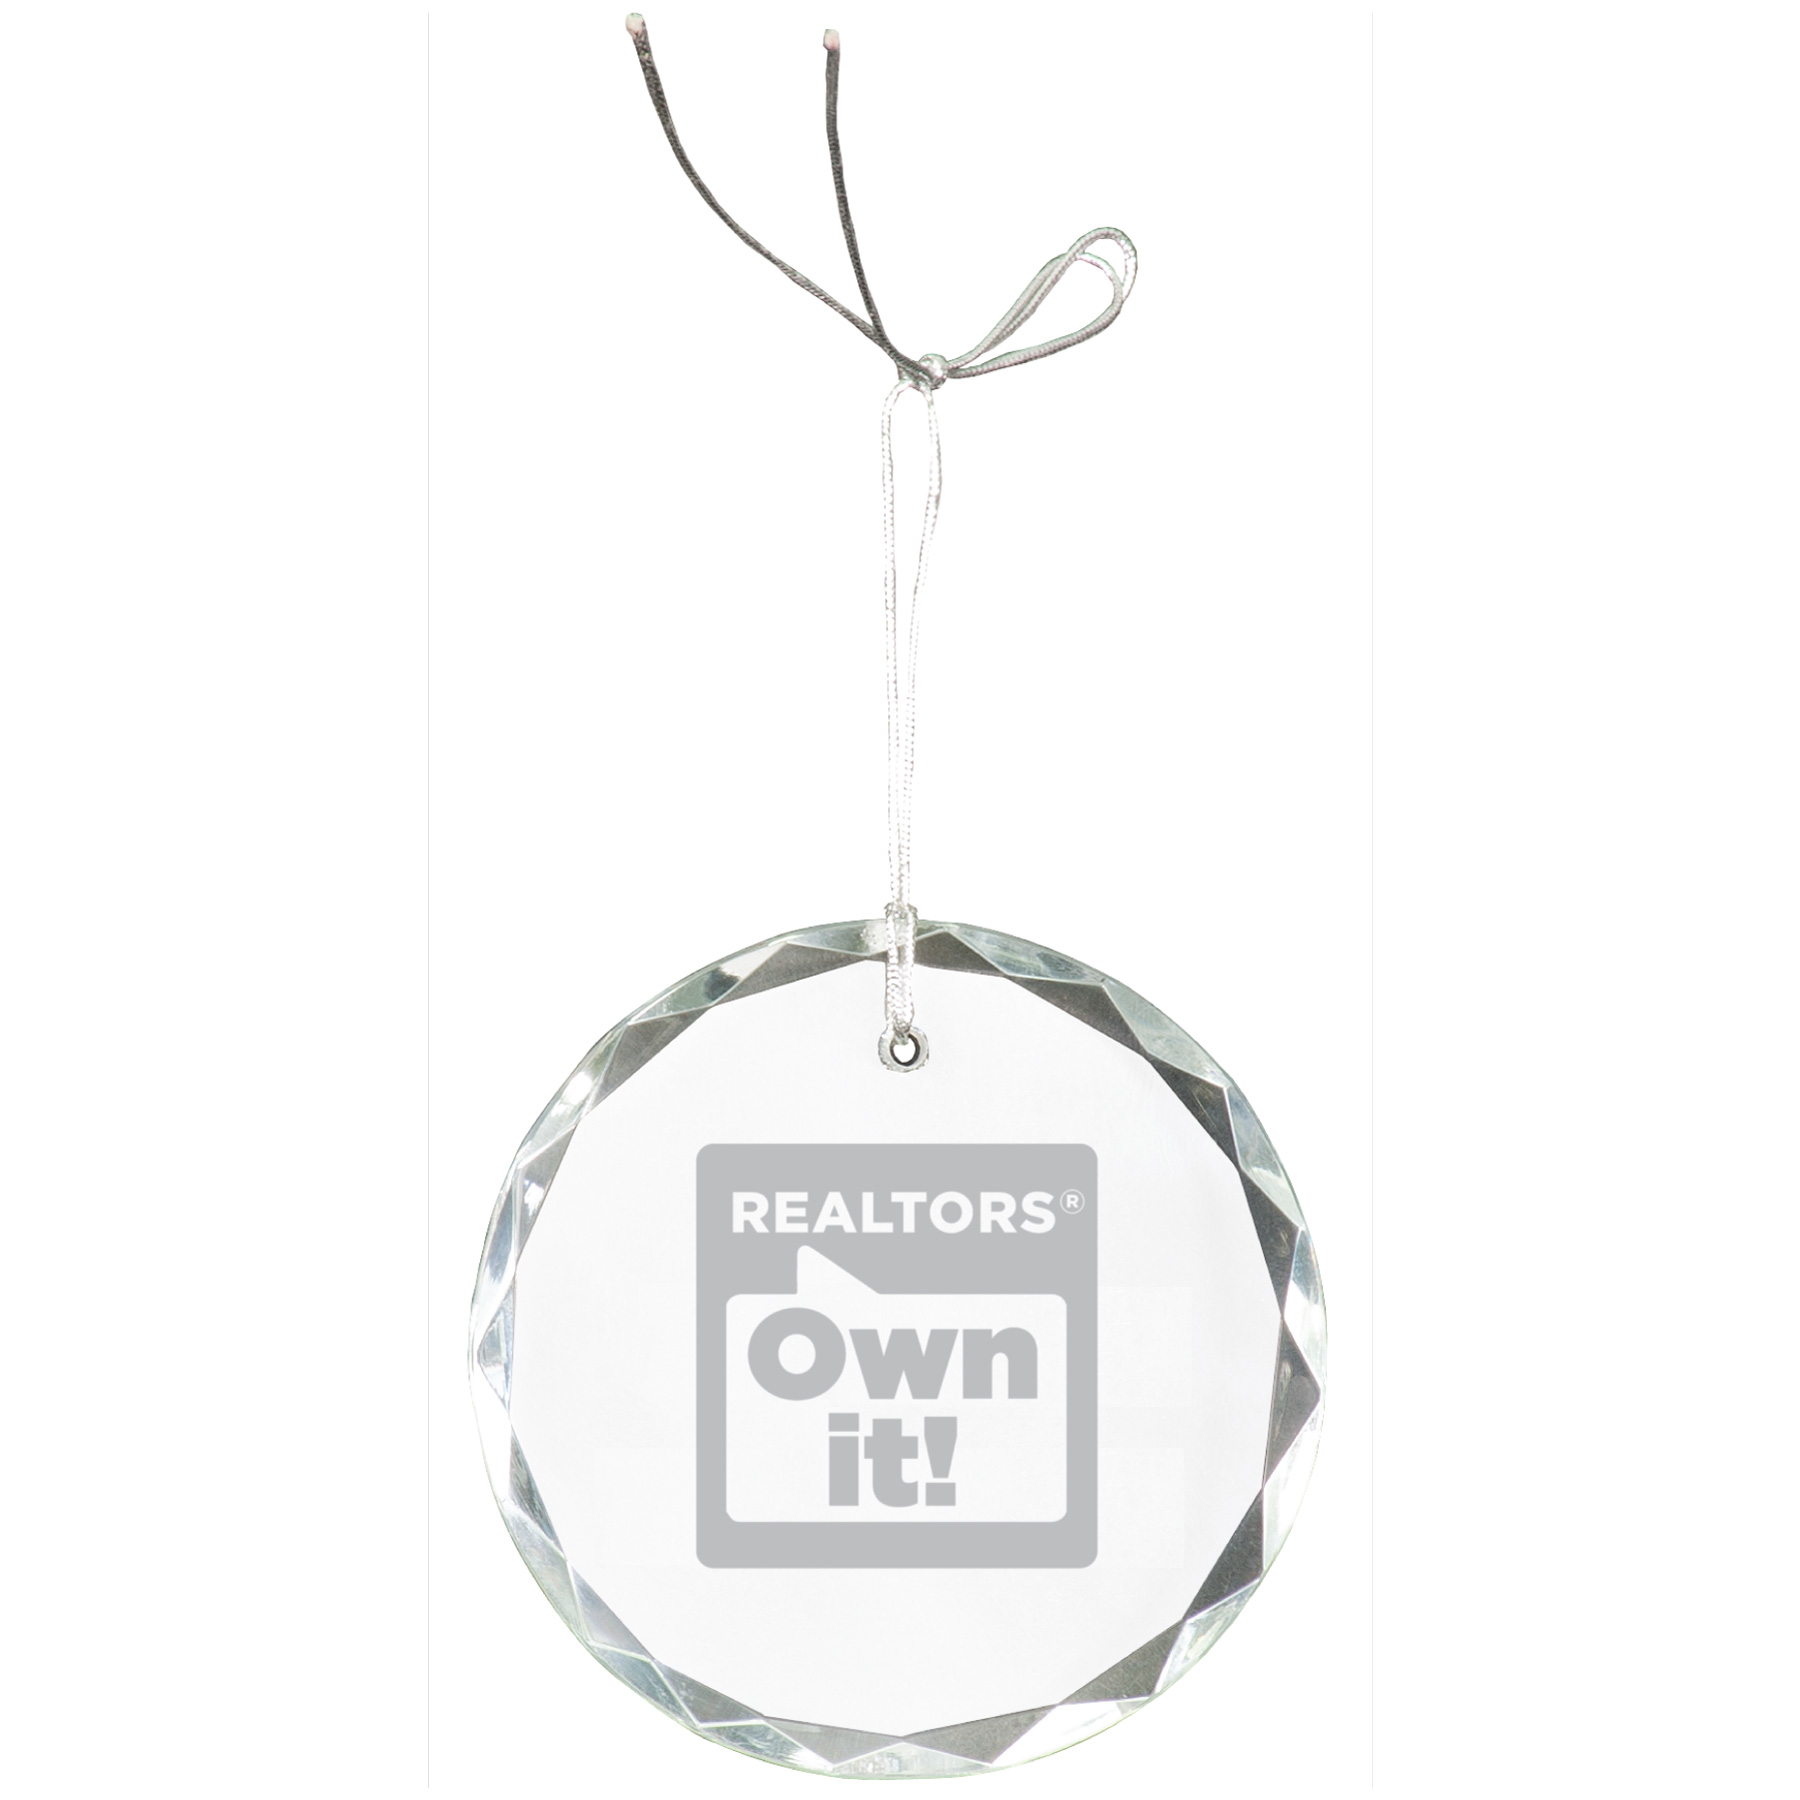 REALTORS® Own It! Crystal Ornament Gifts,Holidays,Christmas,Customize,Crystals,Ornaments,ROI,its,owns